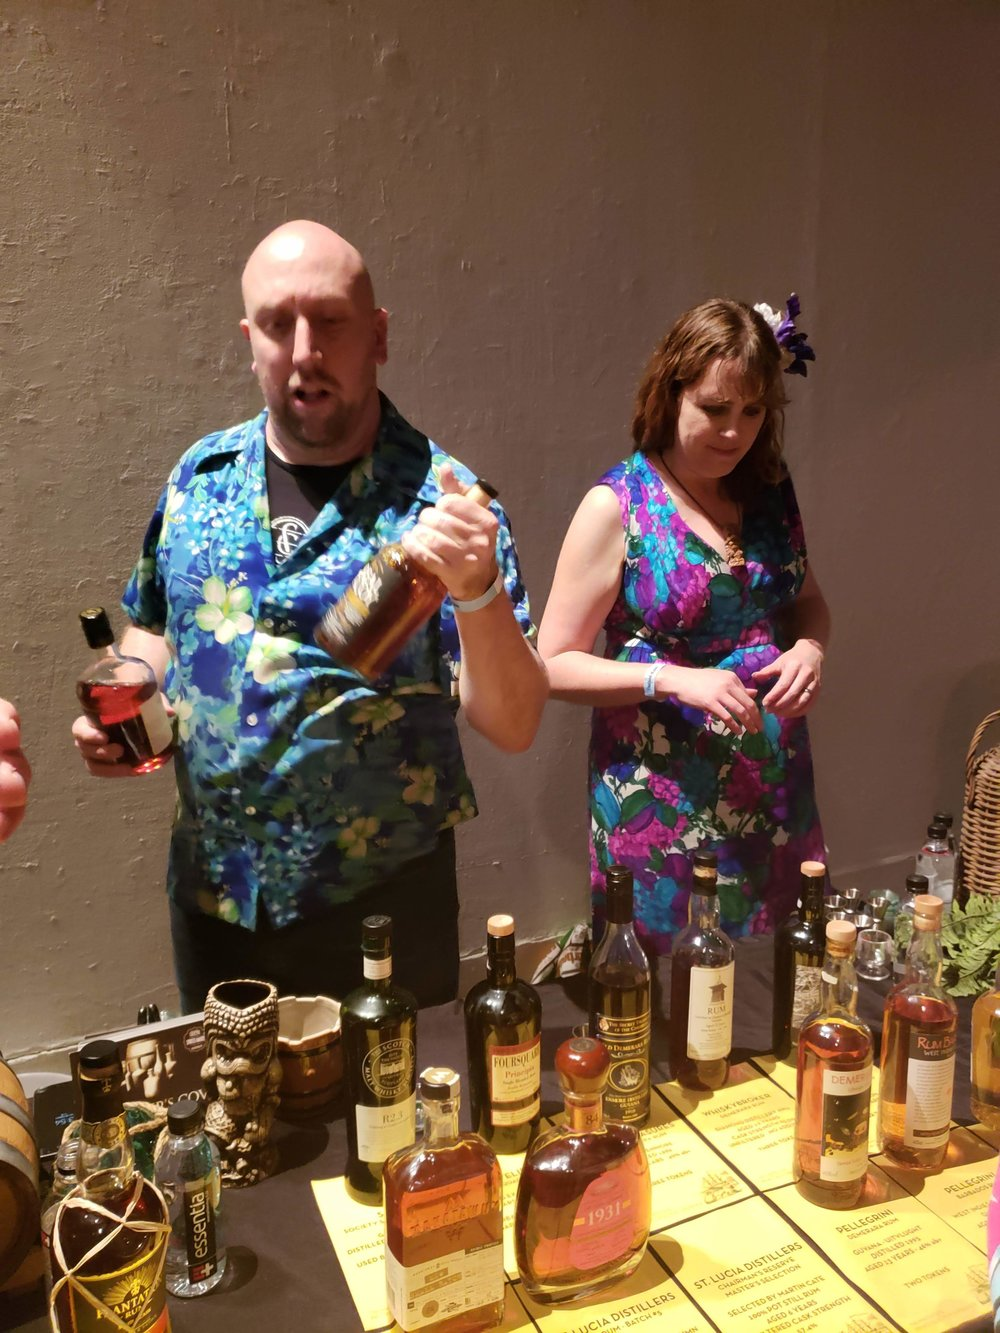 Martin Cate will pour you some delicious rums